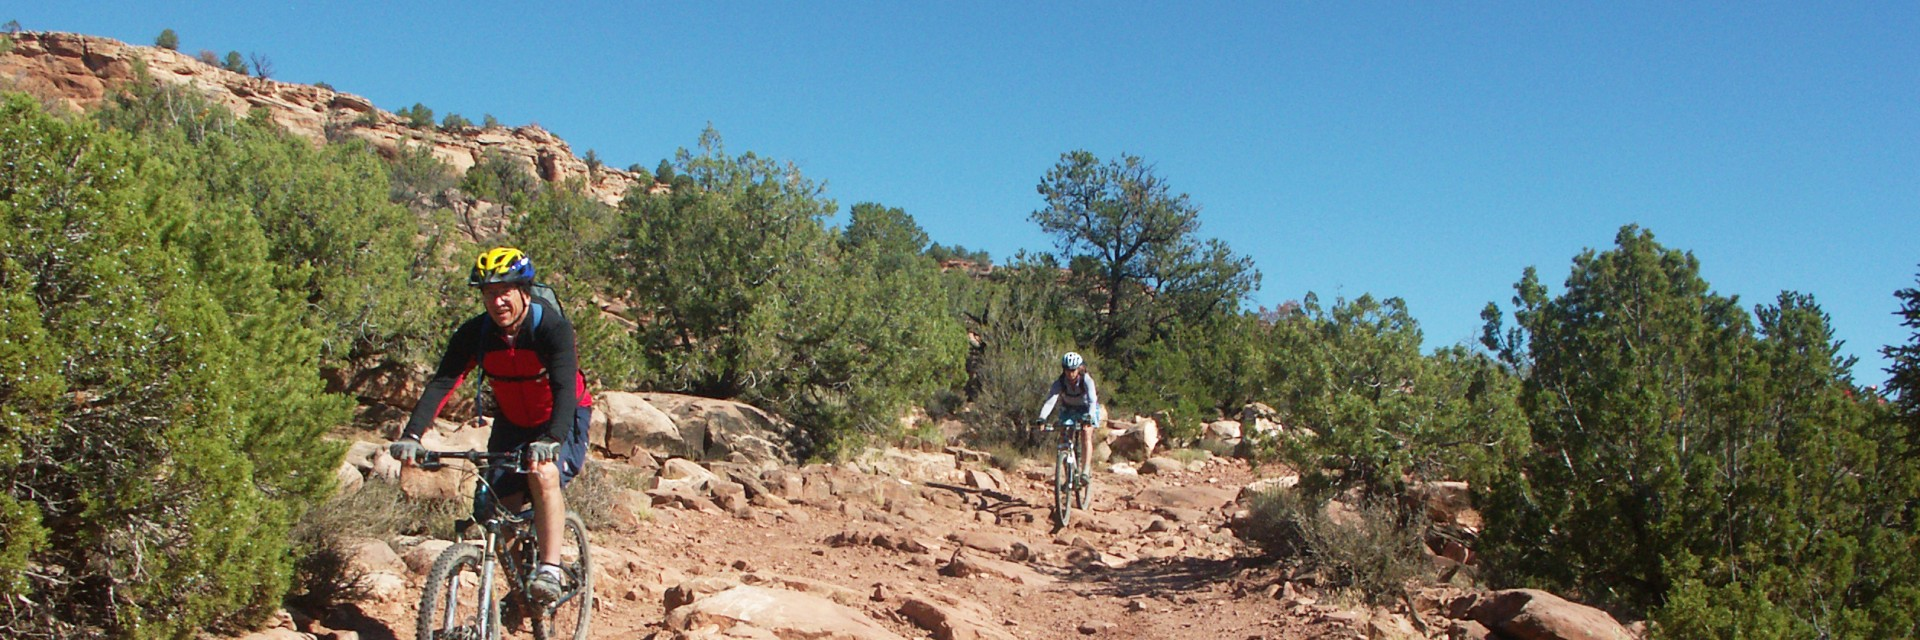 The Kokopelli Trail 5-day guided mountain bike tour from Loma CO to Moab UT has rough and challenging sections